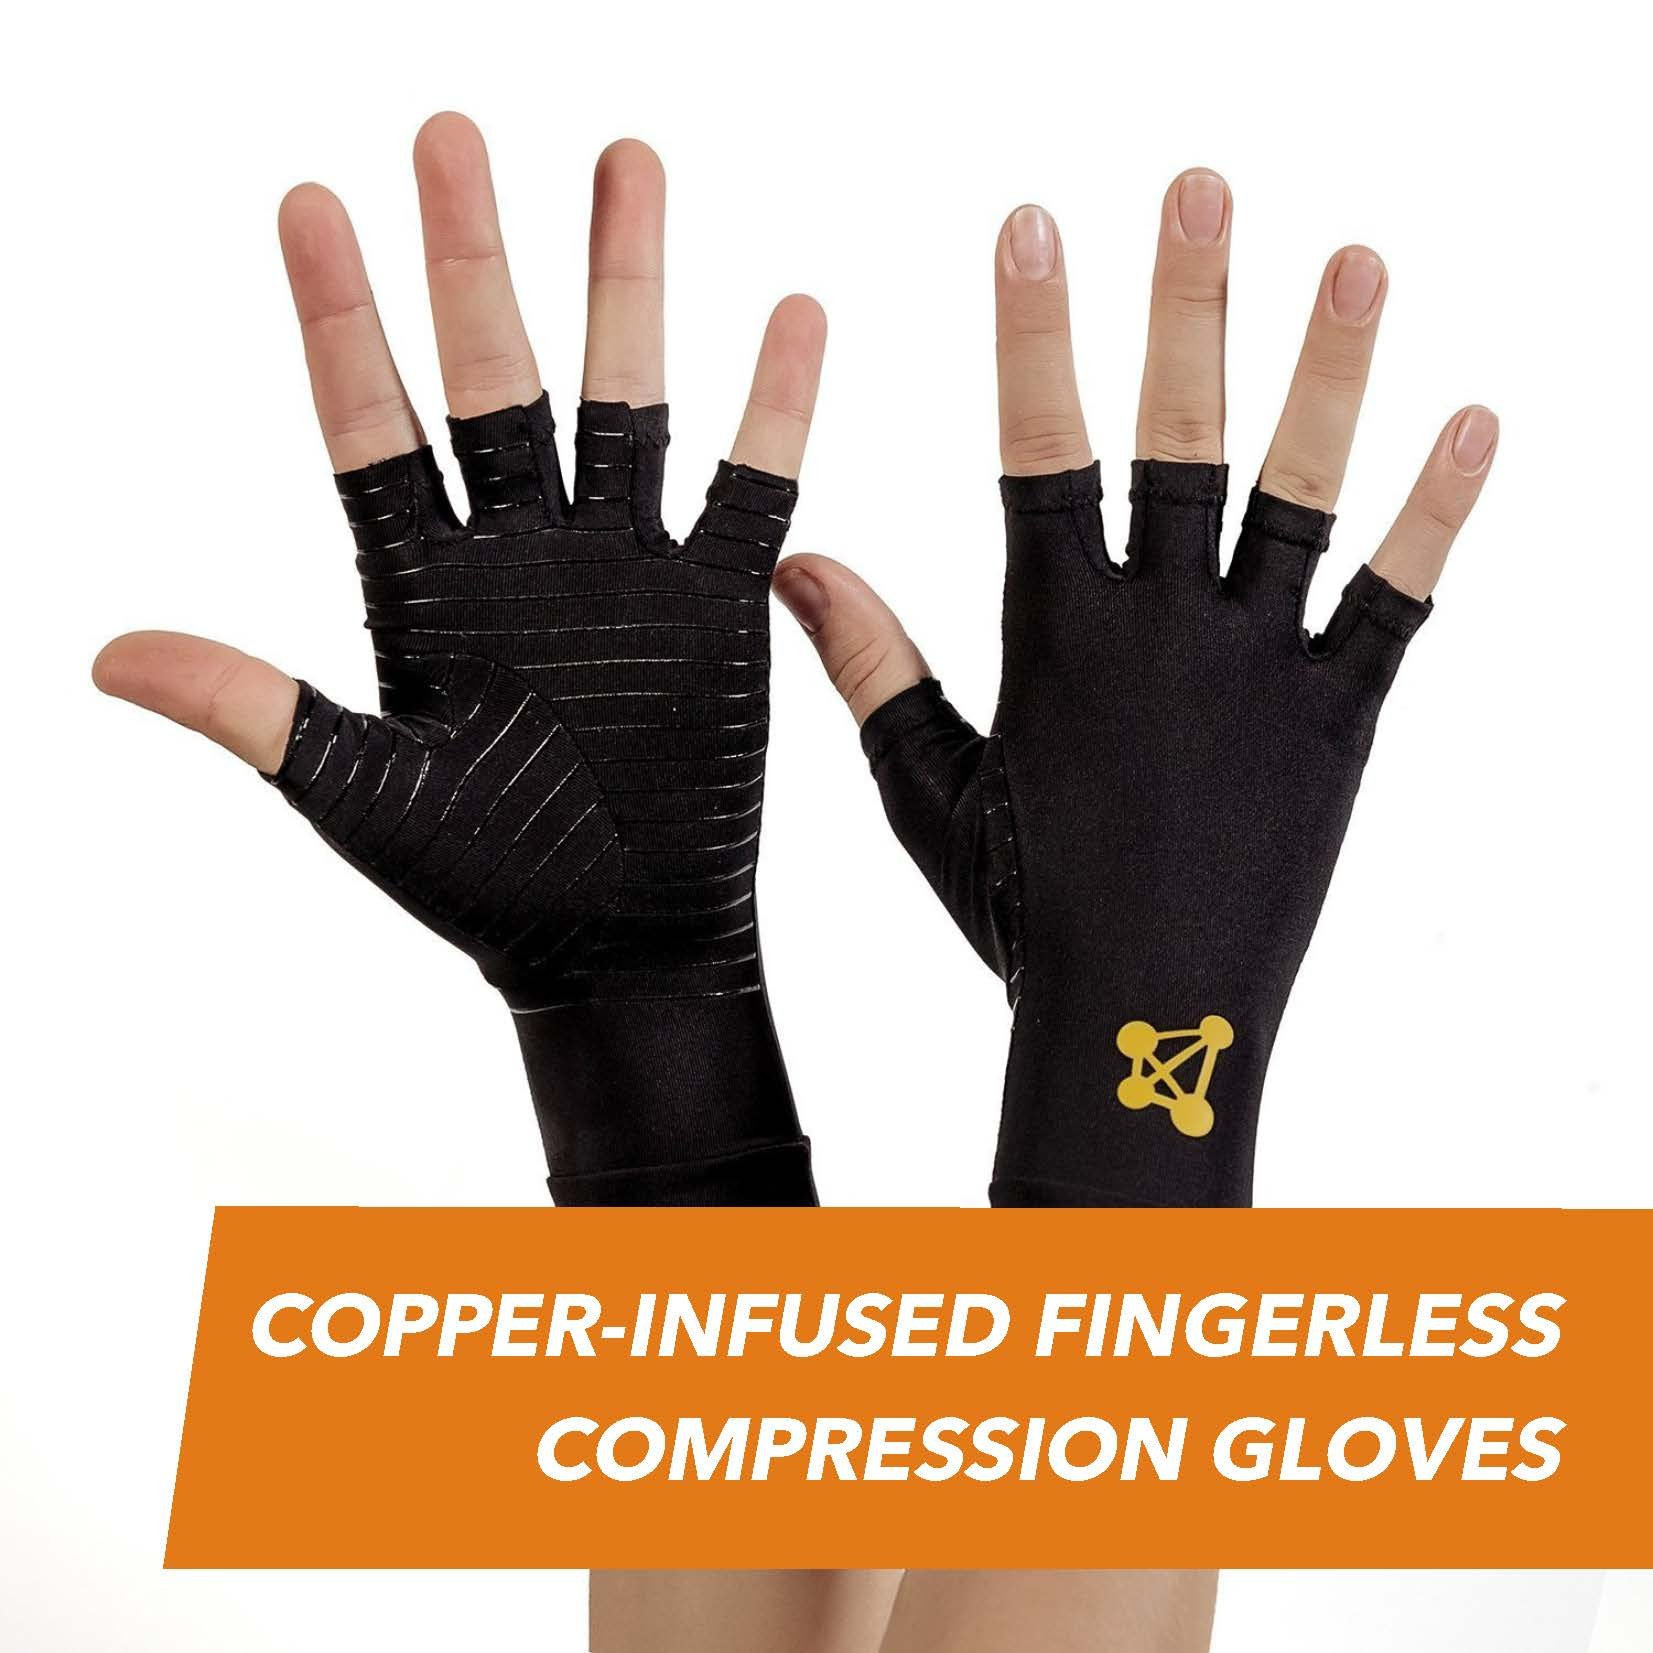 CopperJoint – Copper-Infused Fingerless Compression Gloves, Designed to Support Enhanced Performance, Rapid Recovery and Pain Relief for All Lifestyles, Pair (Medium)